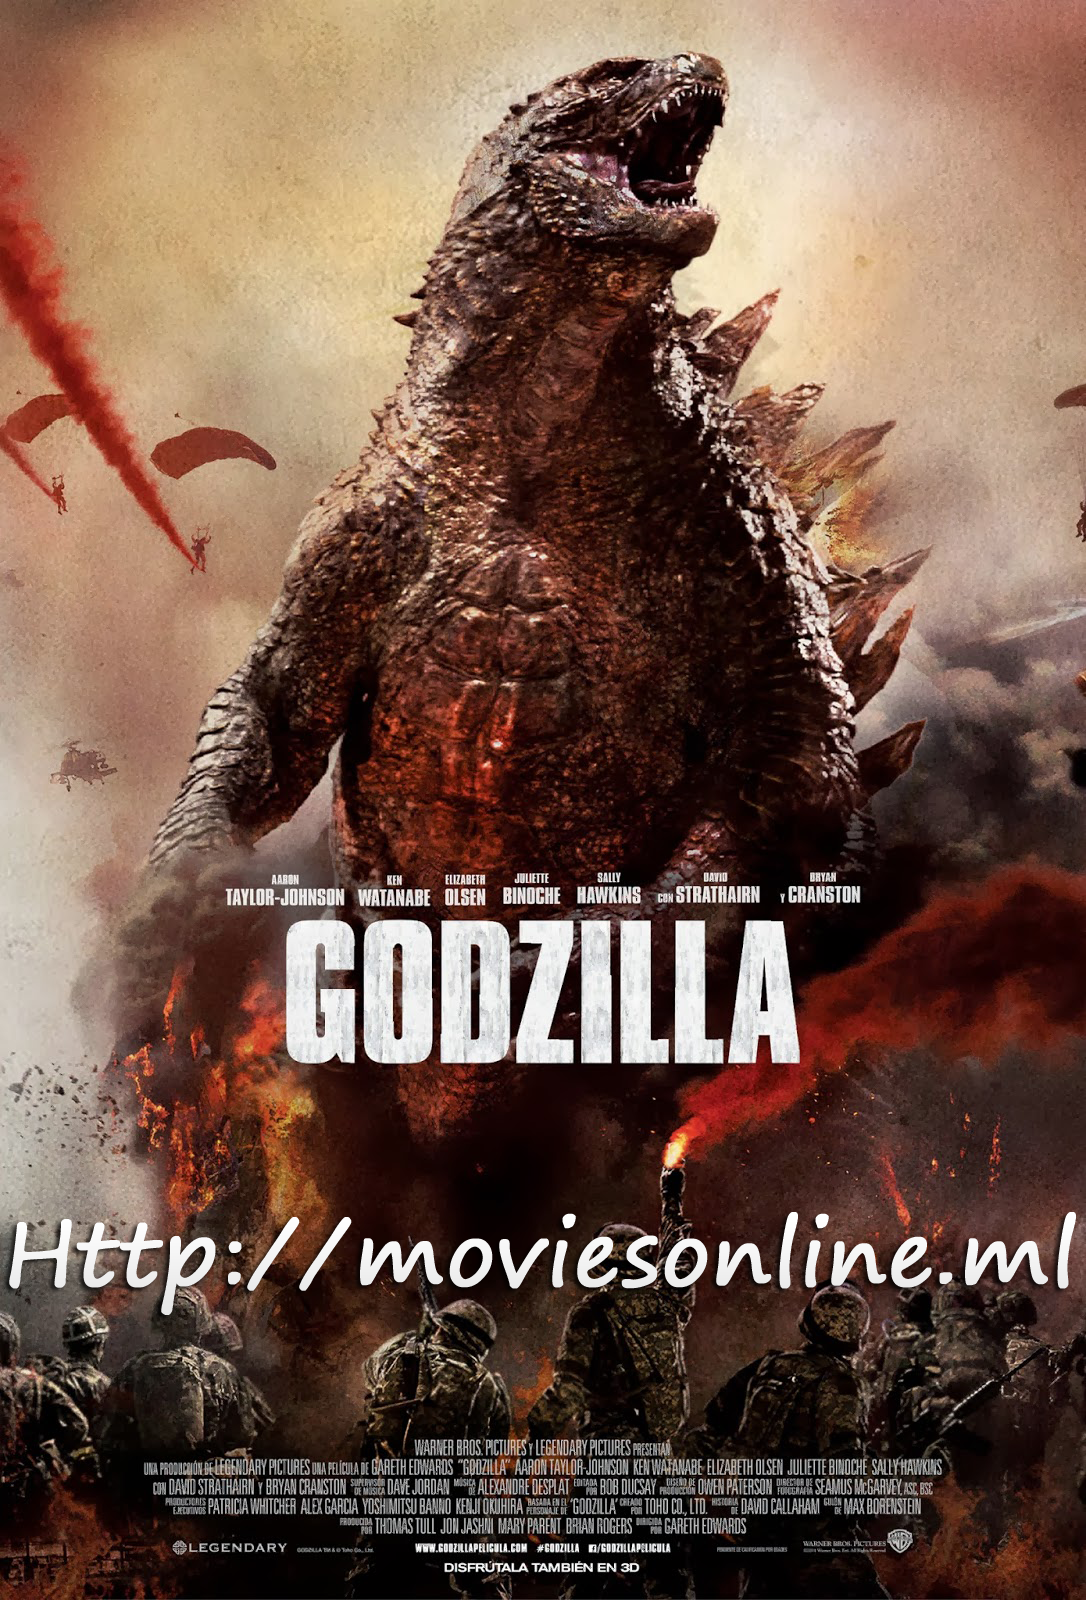 Watch Godzilla 2014 Movie Online at http://moviesonline.ml  BRrip quality and fast streaming!